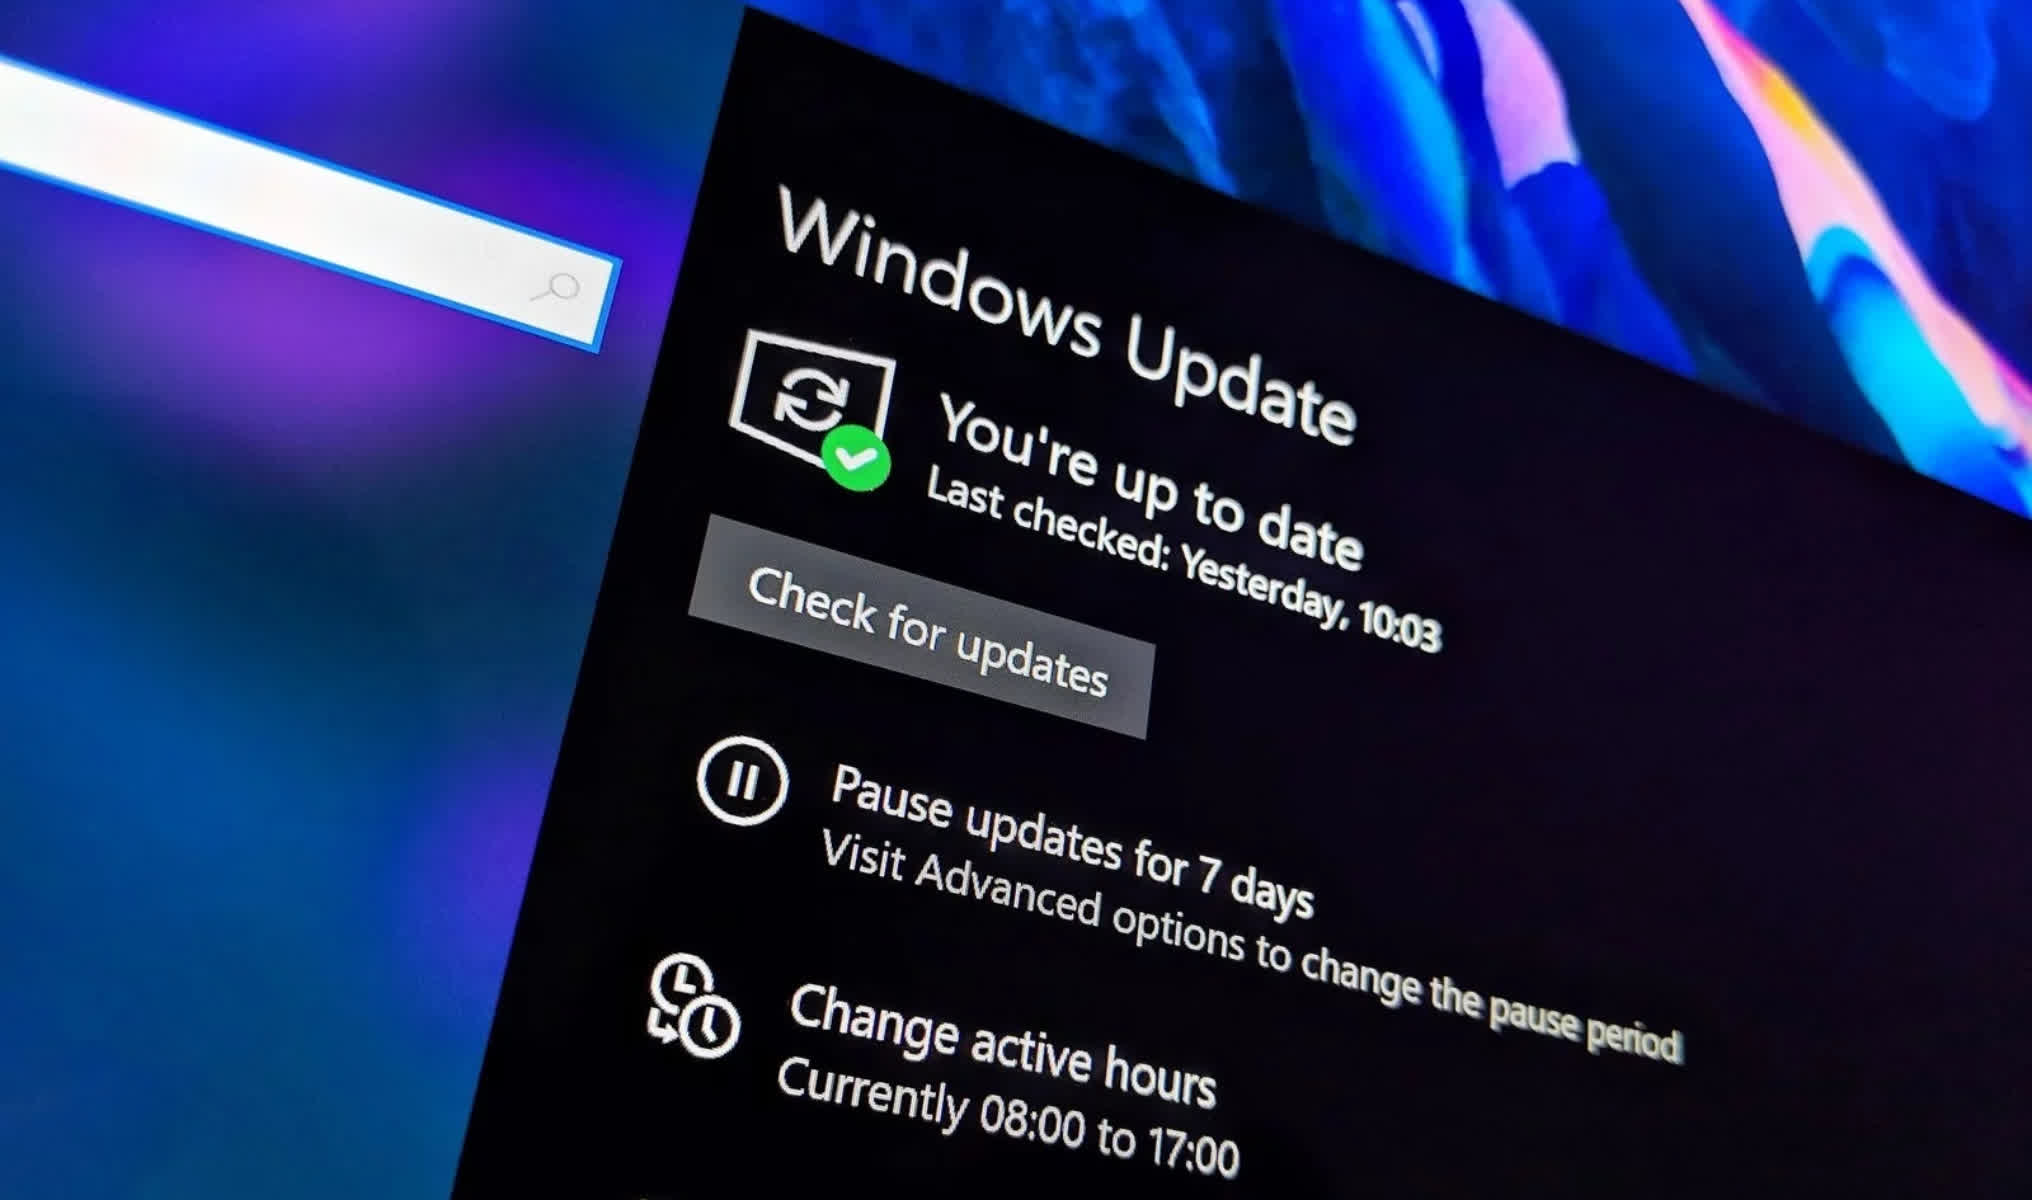 Microsoft's Patch Tuesday brings fixes for more than 80 vulnerabilities in Windows, Office, Edge, and more